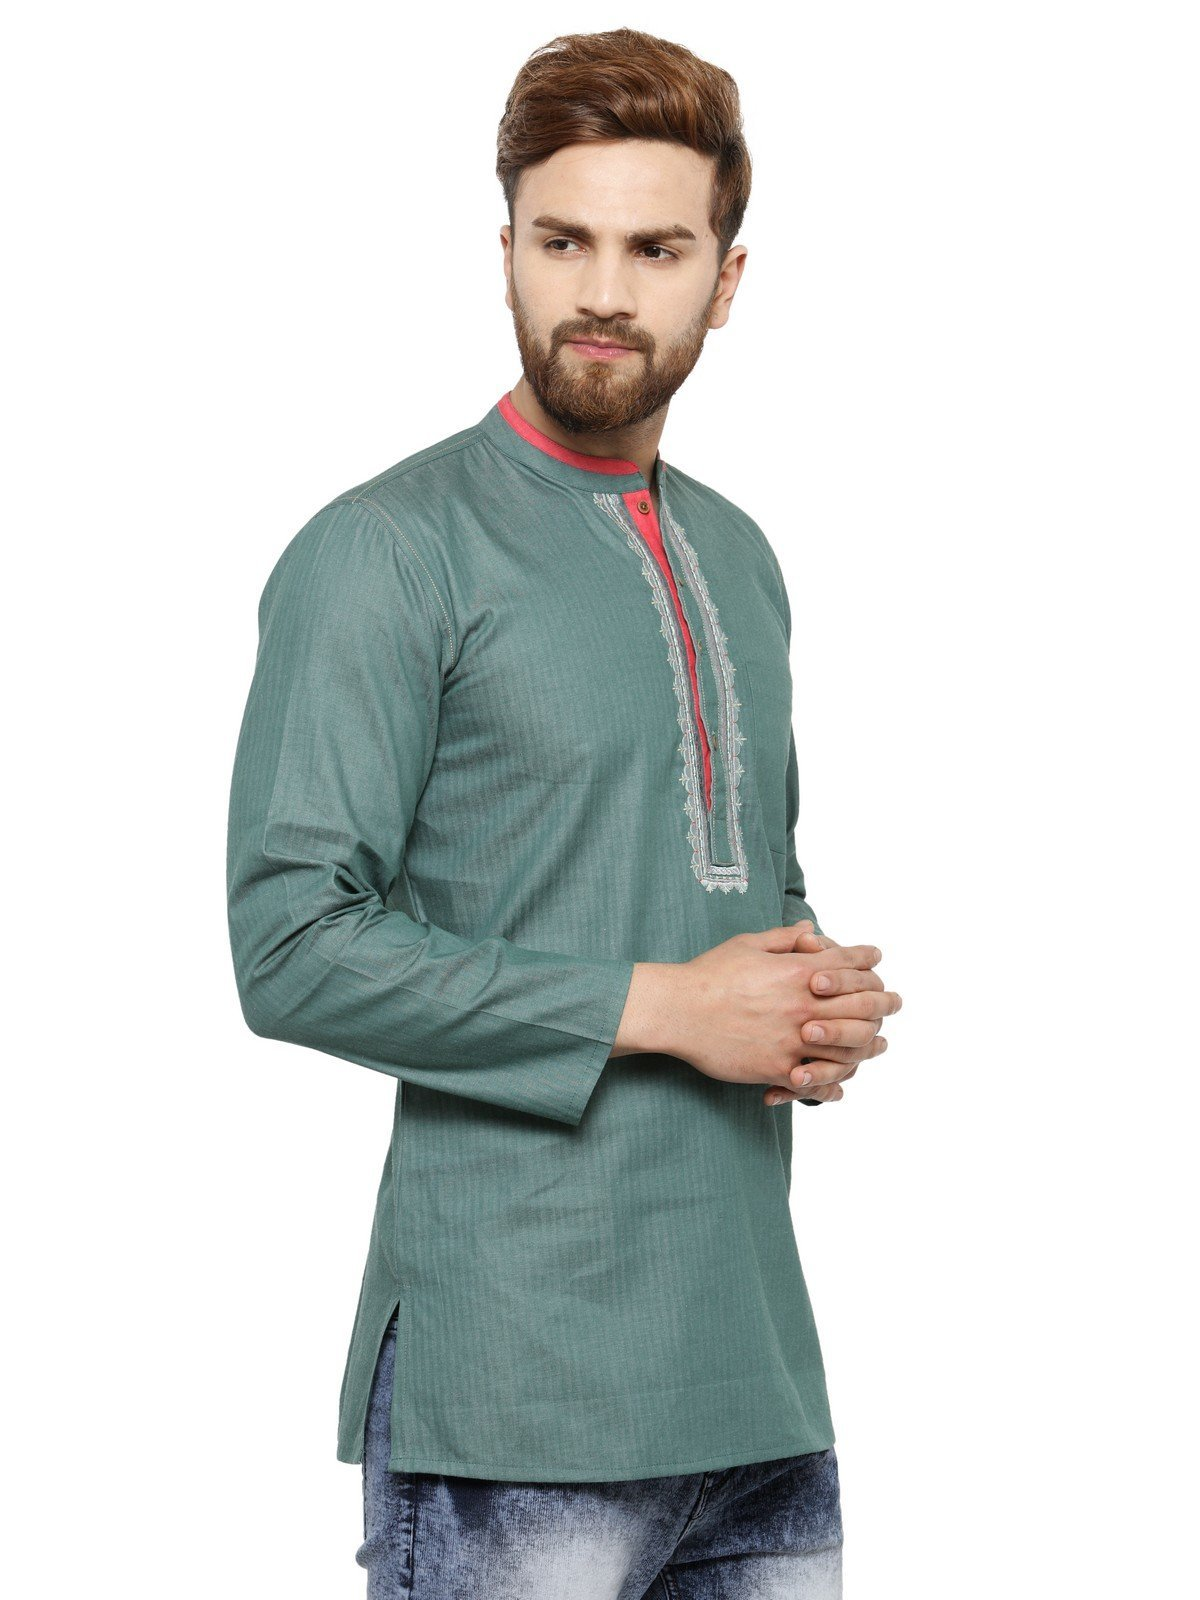 Apparel Men's Cotton Designer Short Kurta 42 Green by ARCH ELEMENTS (Image #3)